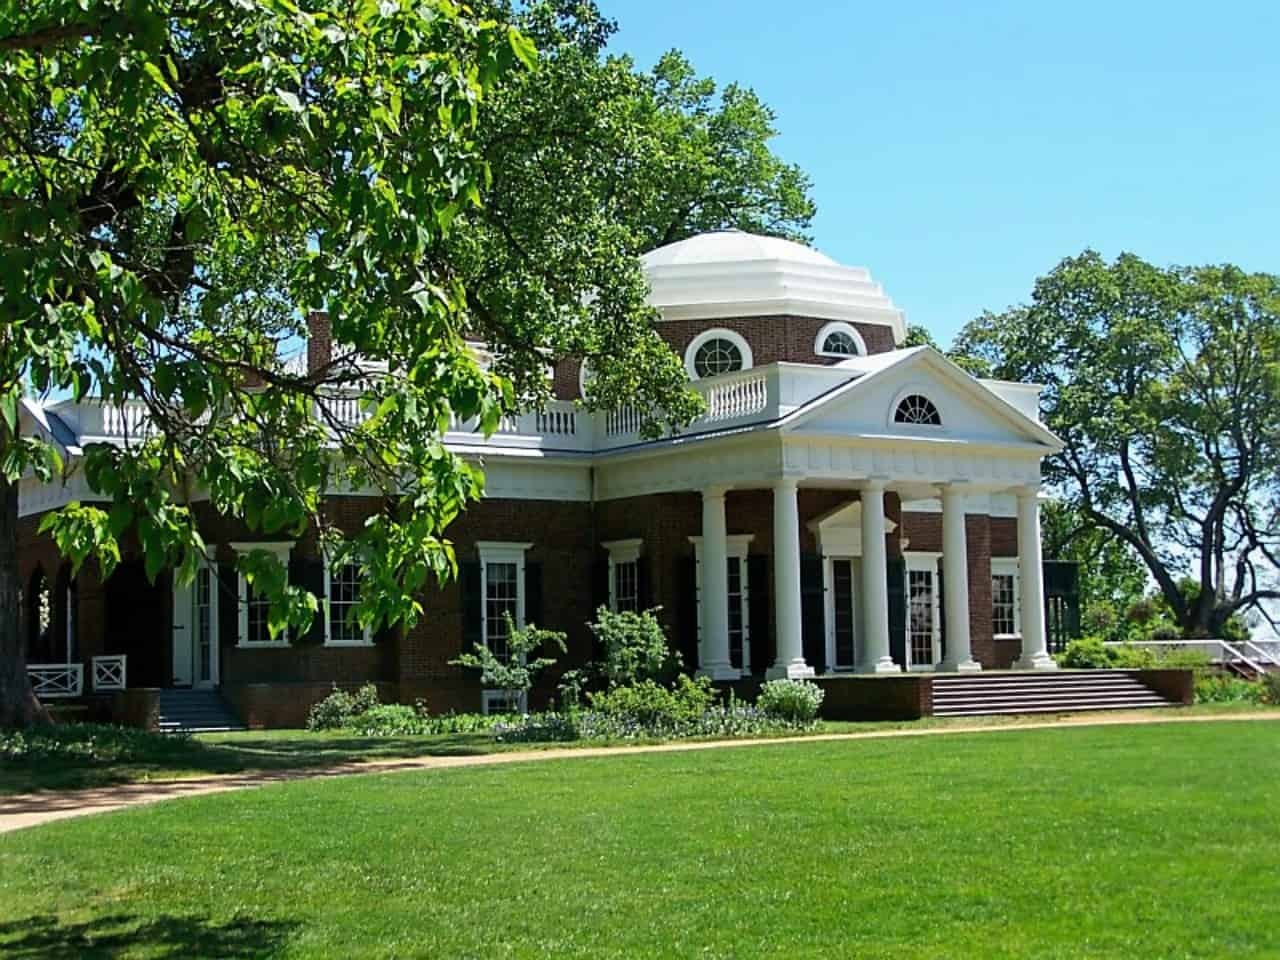 Monticello was the primary plantation of Thomas Jefferson, the third president of the United States.